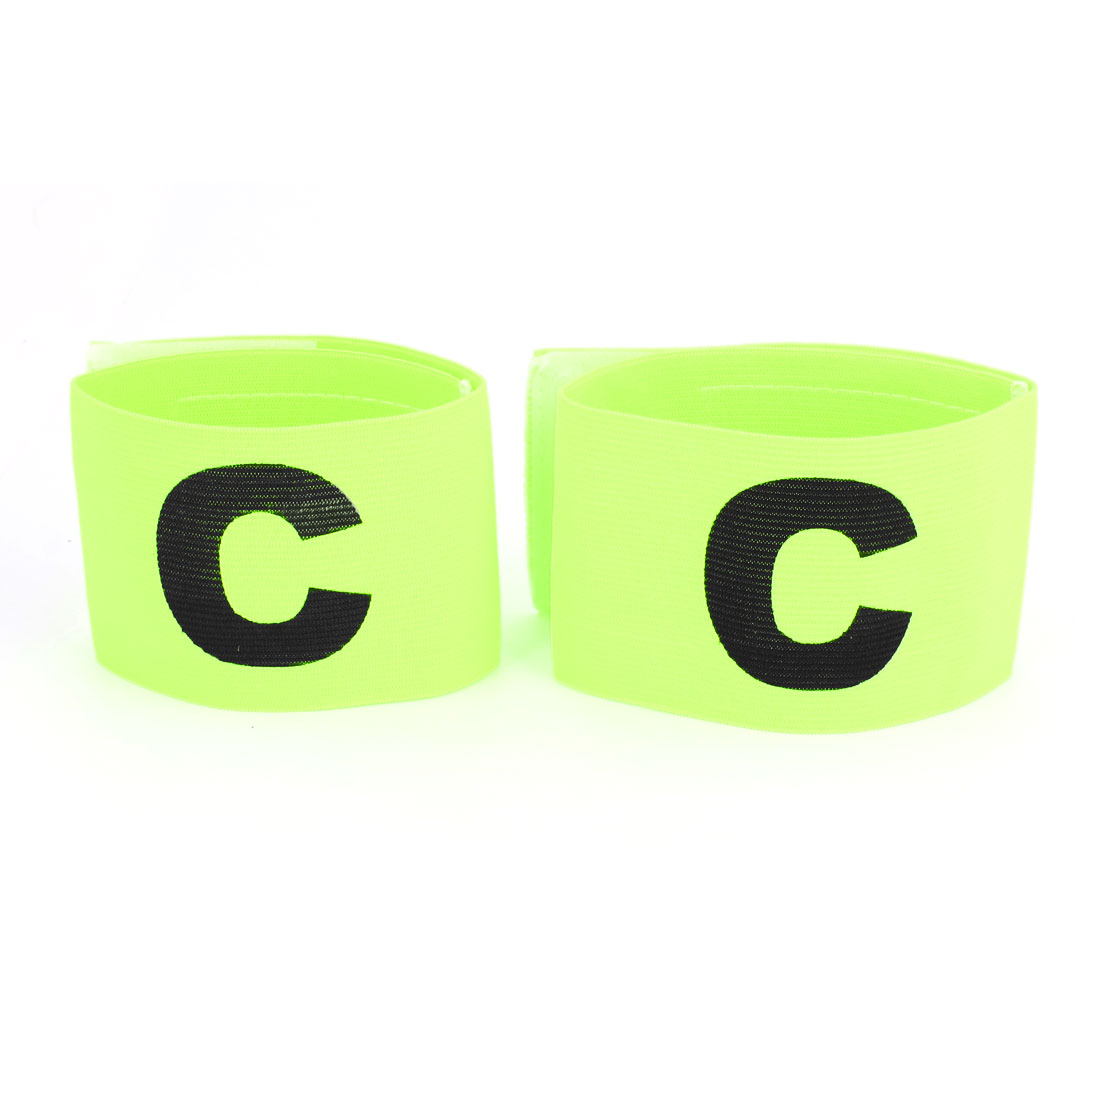 Character C Printed Football Game Hook Loop Closure Elastic Armband Yellow Green 2pcs